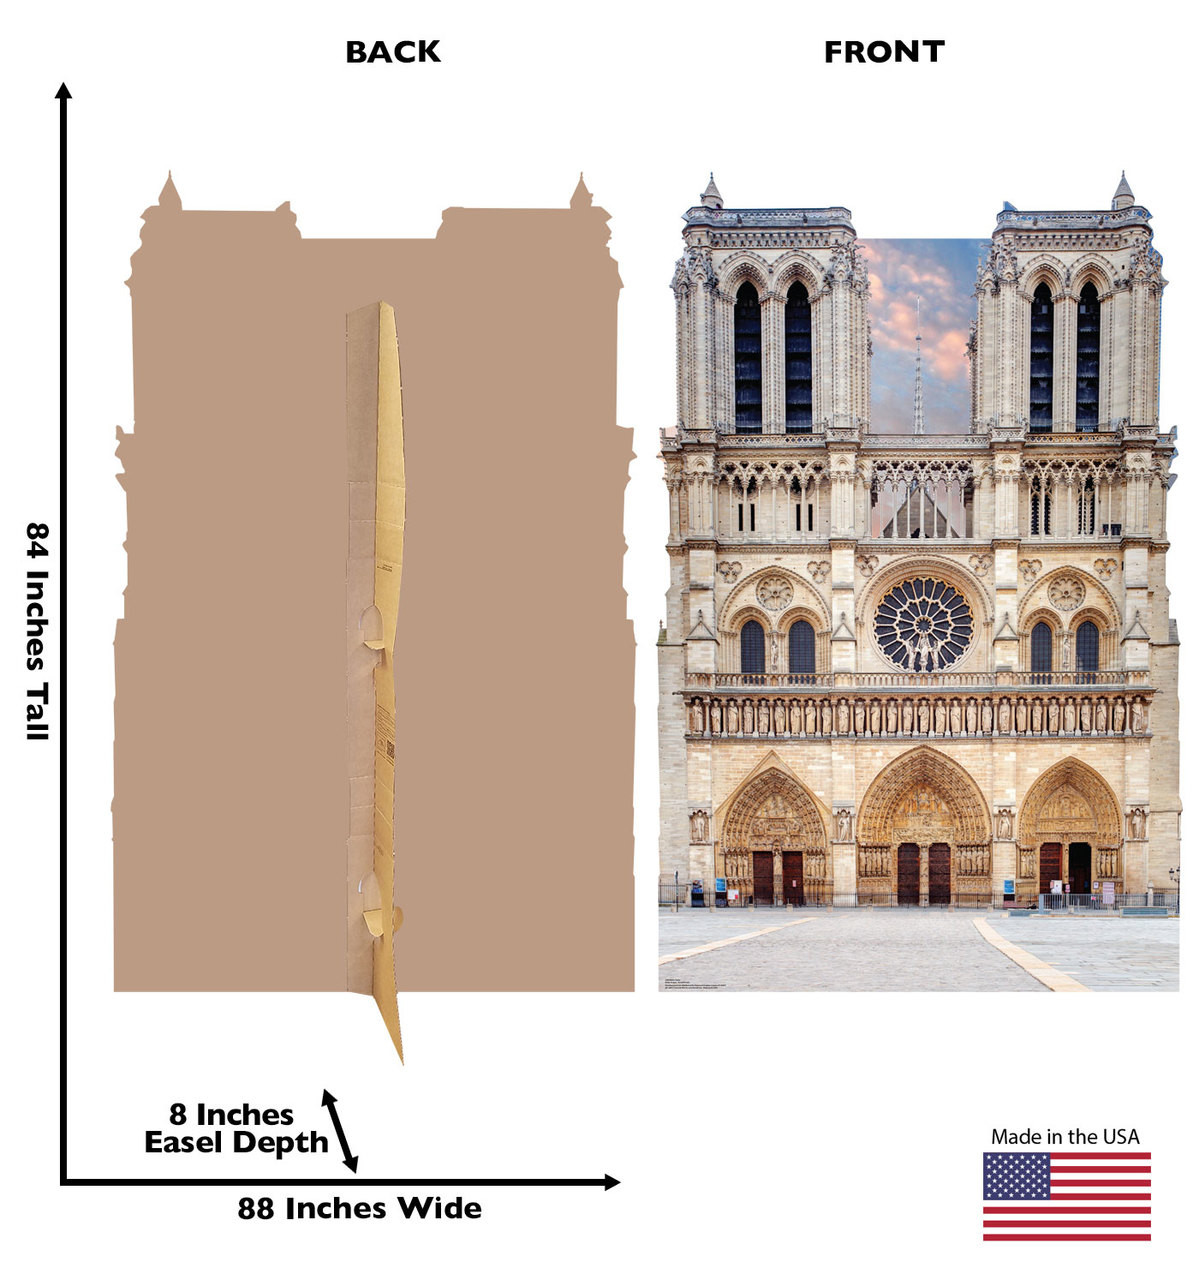 Notre Dame Standee showing front and back and dimensions.